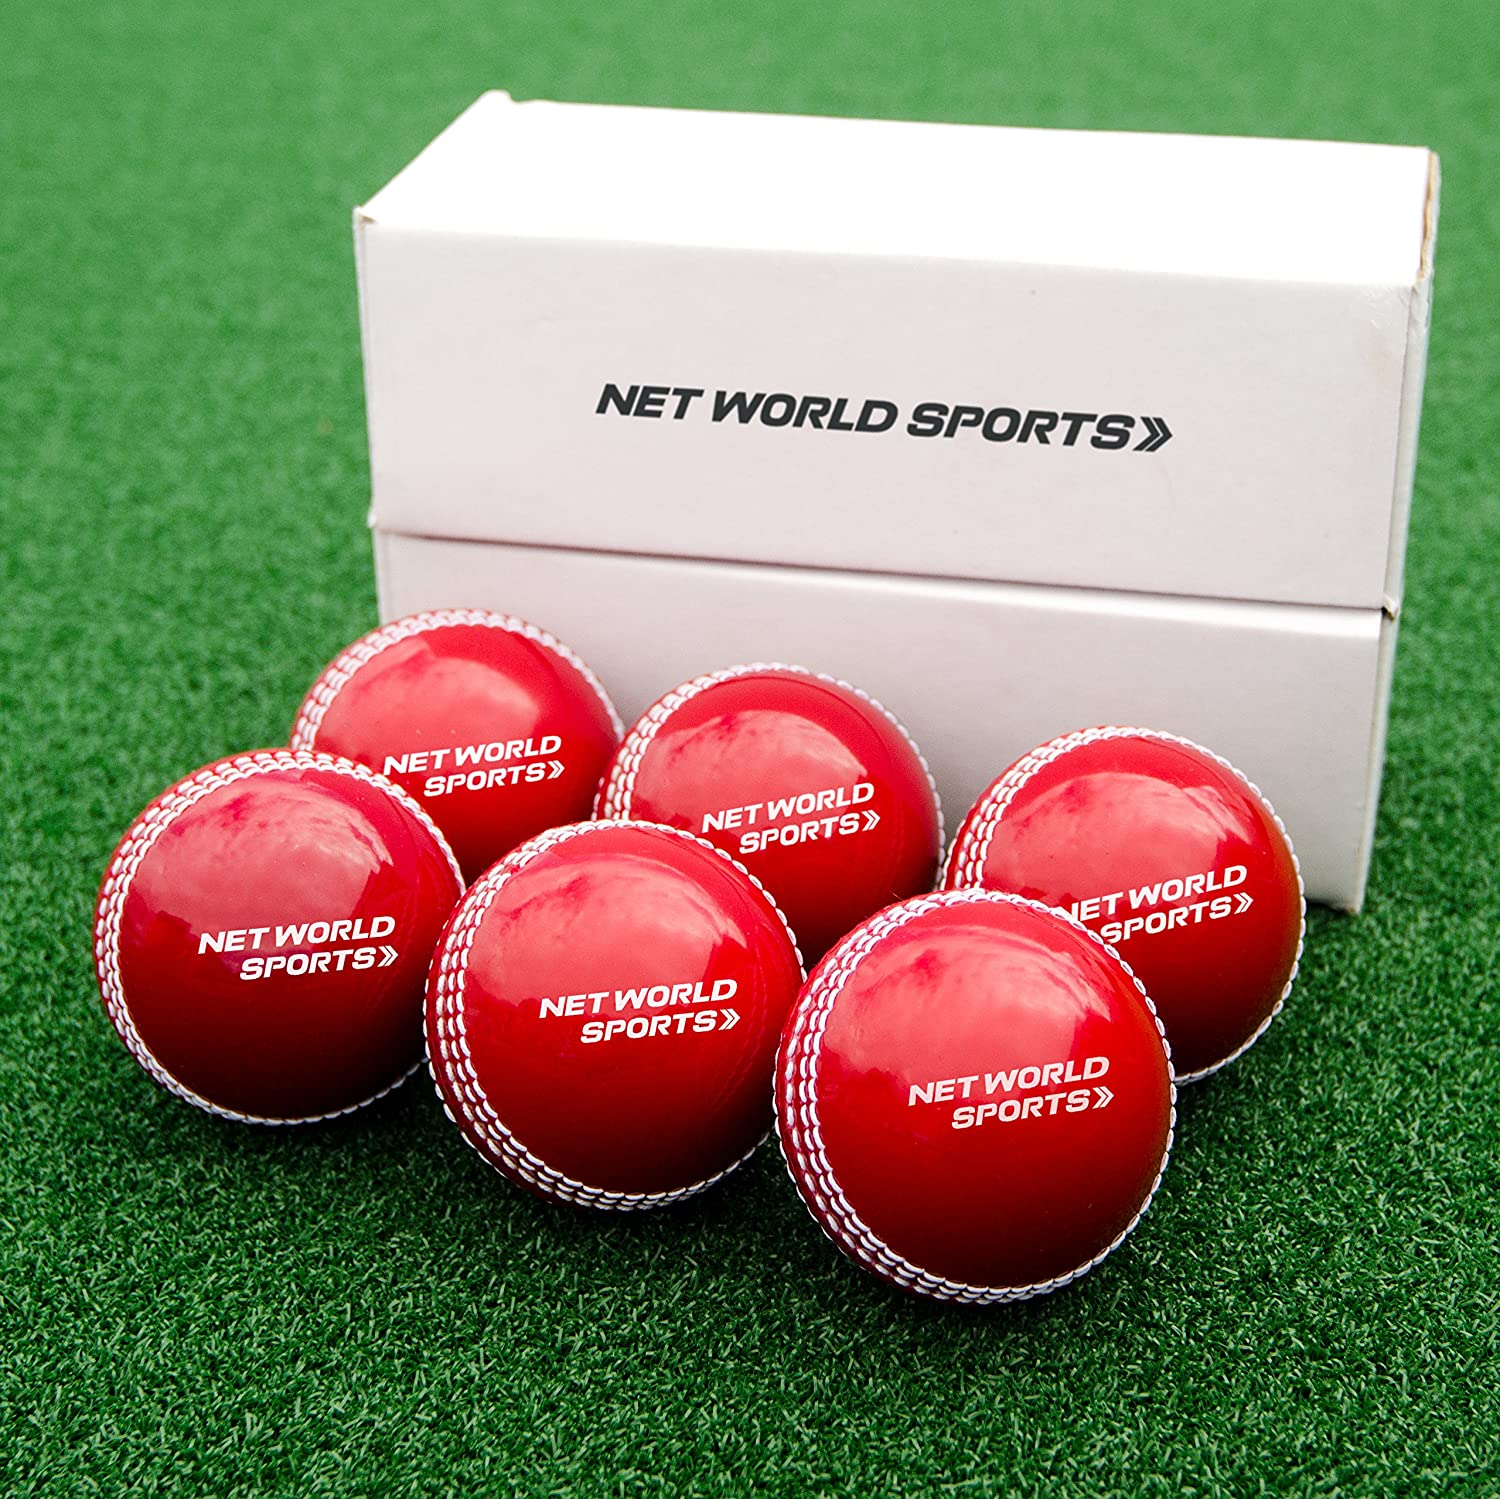 Cricket 'Incrediball' Practice Balls [6 Pack] - Excellent training aid for all players - [Net World Sports] by Net World Sports